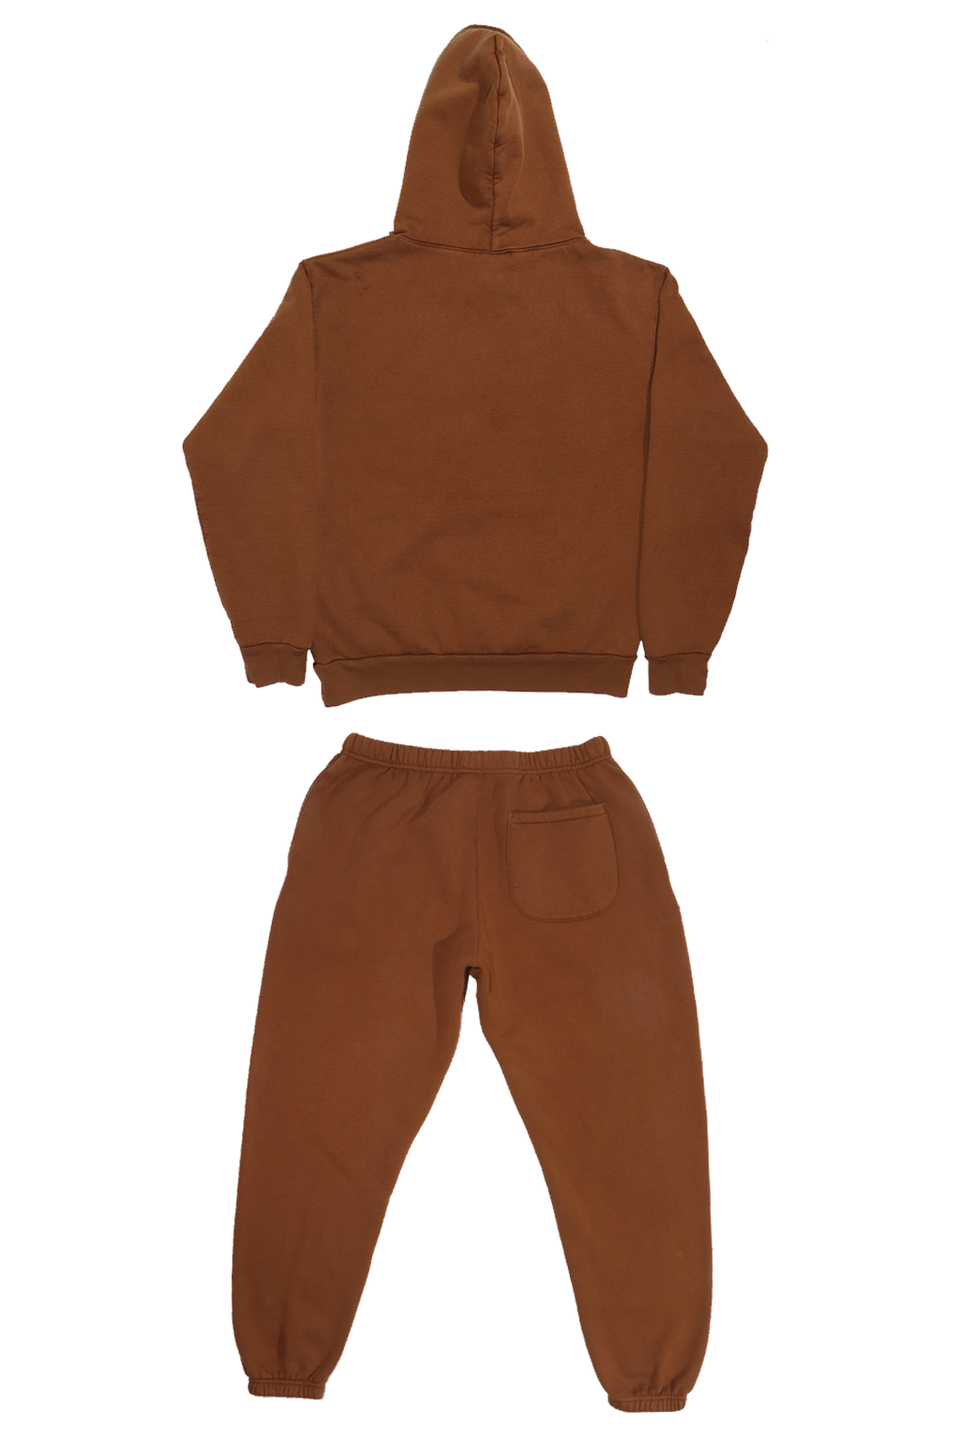 Cemita Brown Set